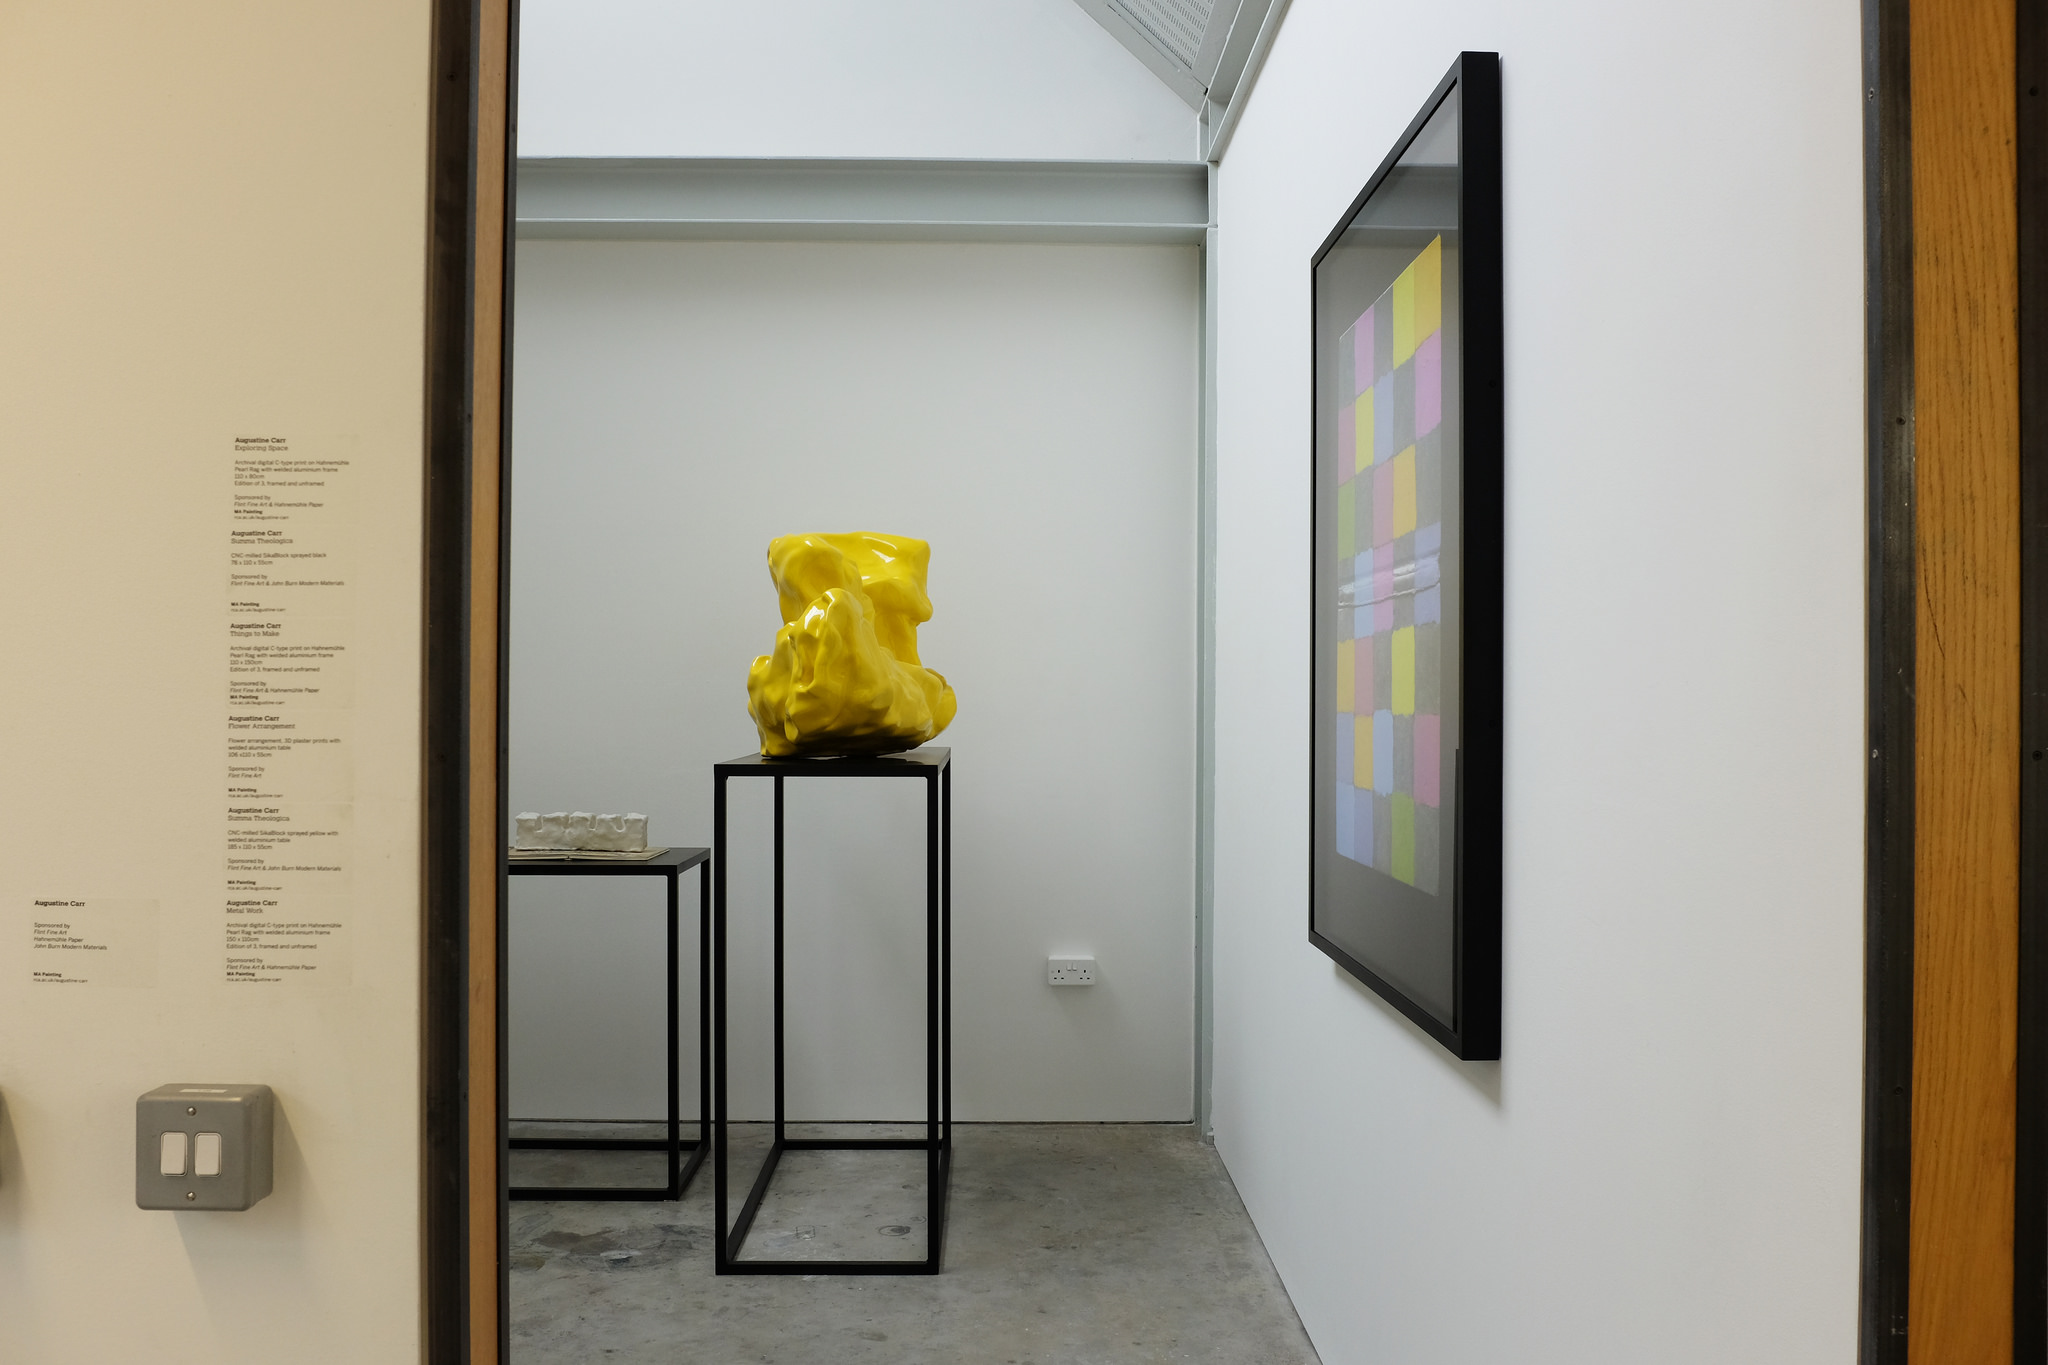 Works installed at the Royal College of Art Show, 2016